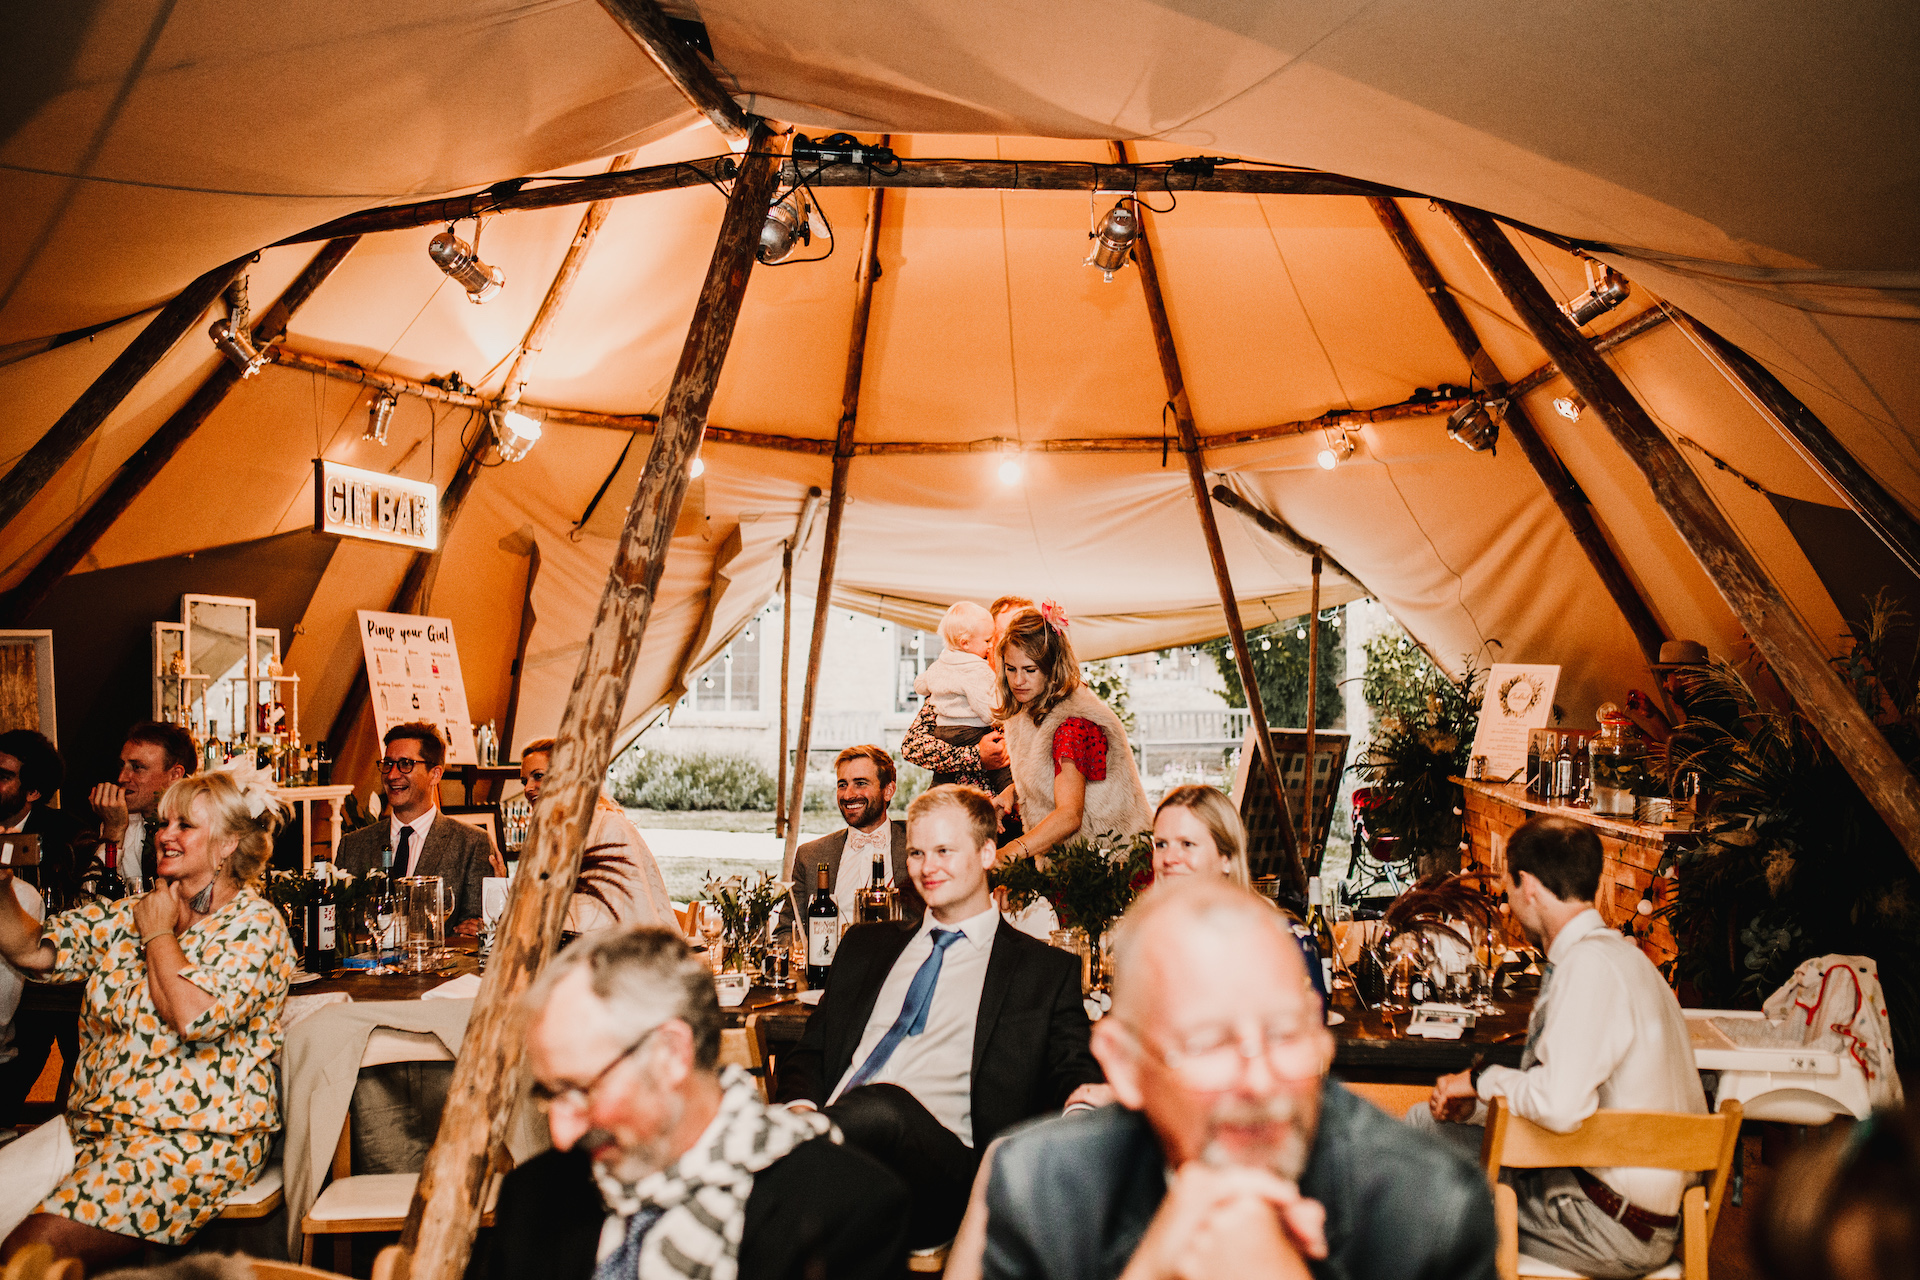 PapaKåta couple Hayley & Luke's Teepee Wedding in Ascott-Under-Wychwood, Oxon captured by Carla Blain Photography- Wedding guests